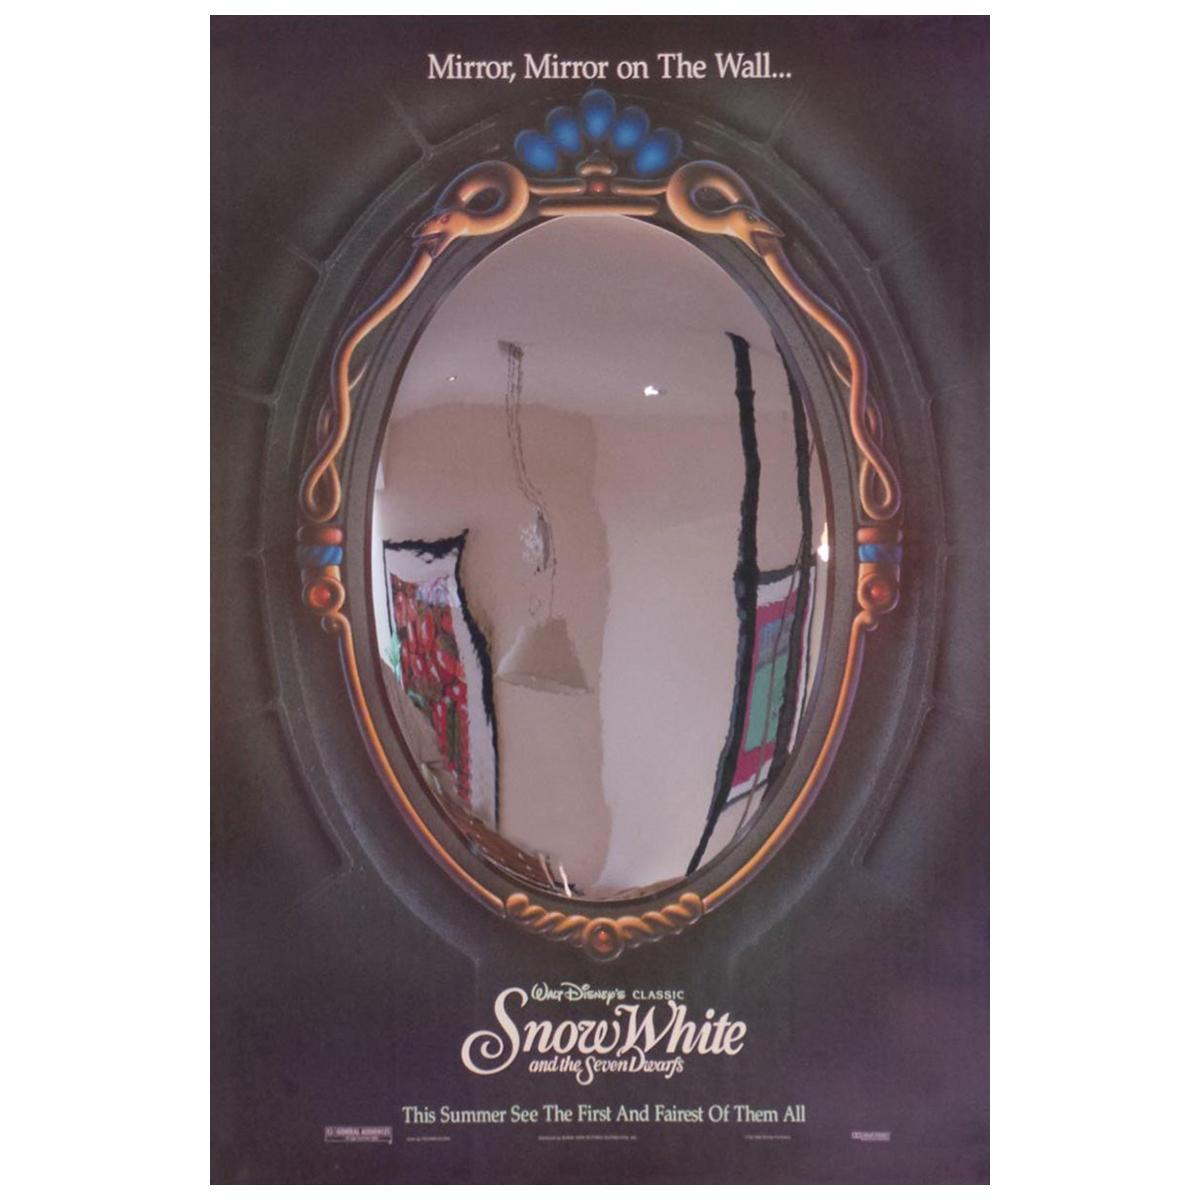 Snow White and the Seven Dwarfs, 1993r Poster